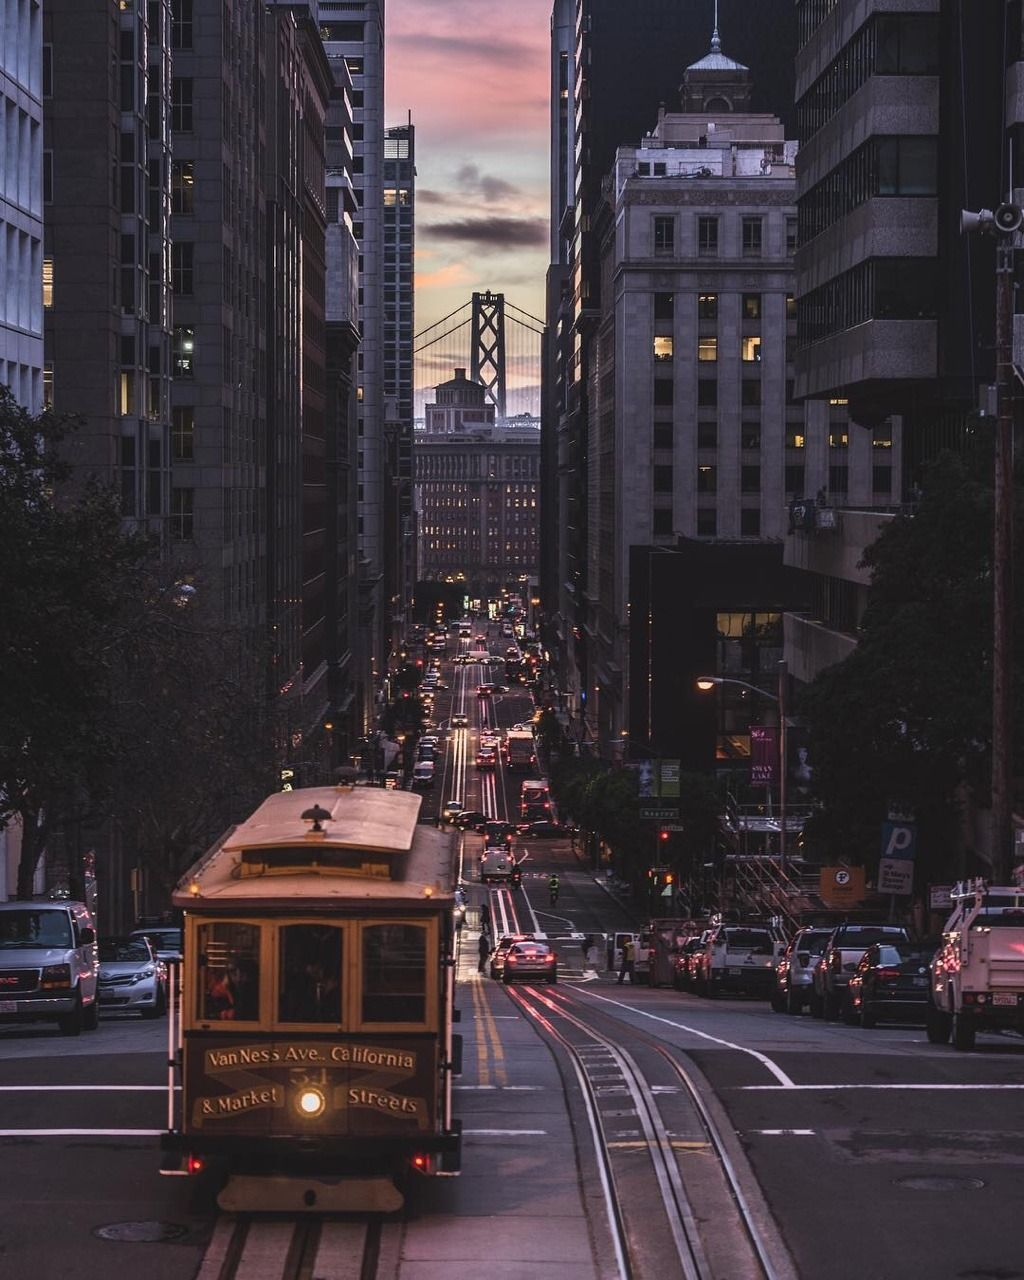 California St in San Francisco by Chris Henderson | Places ...